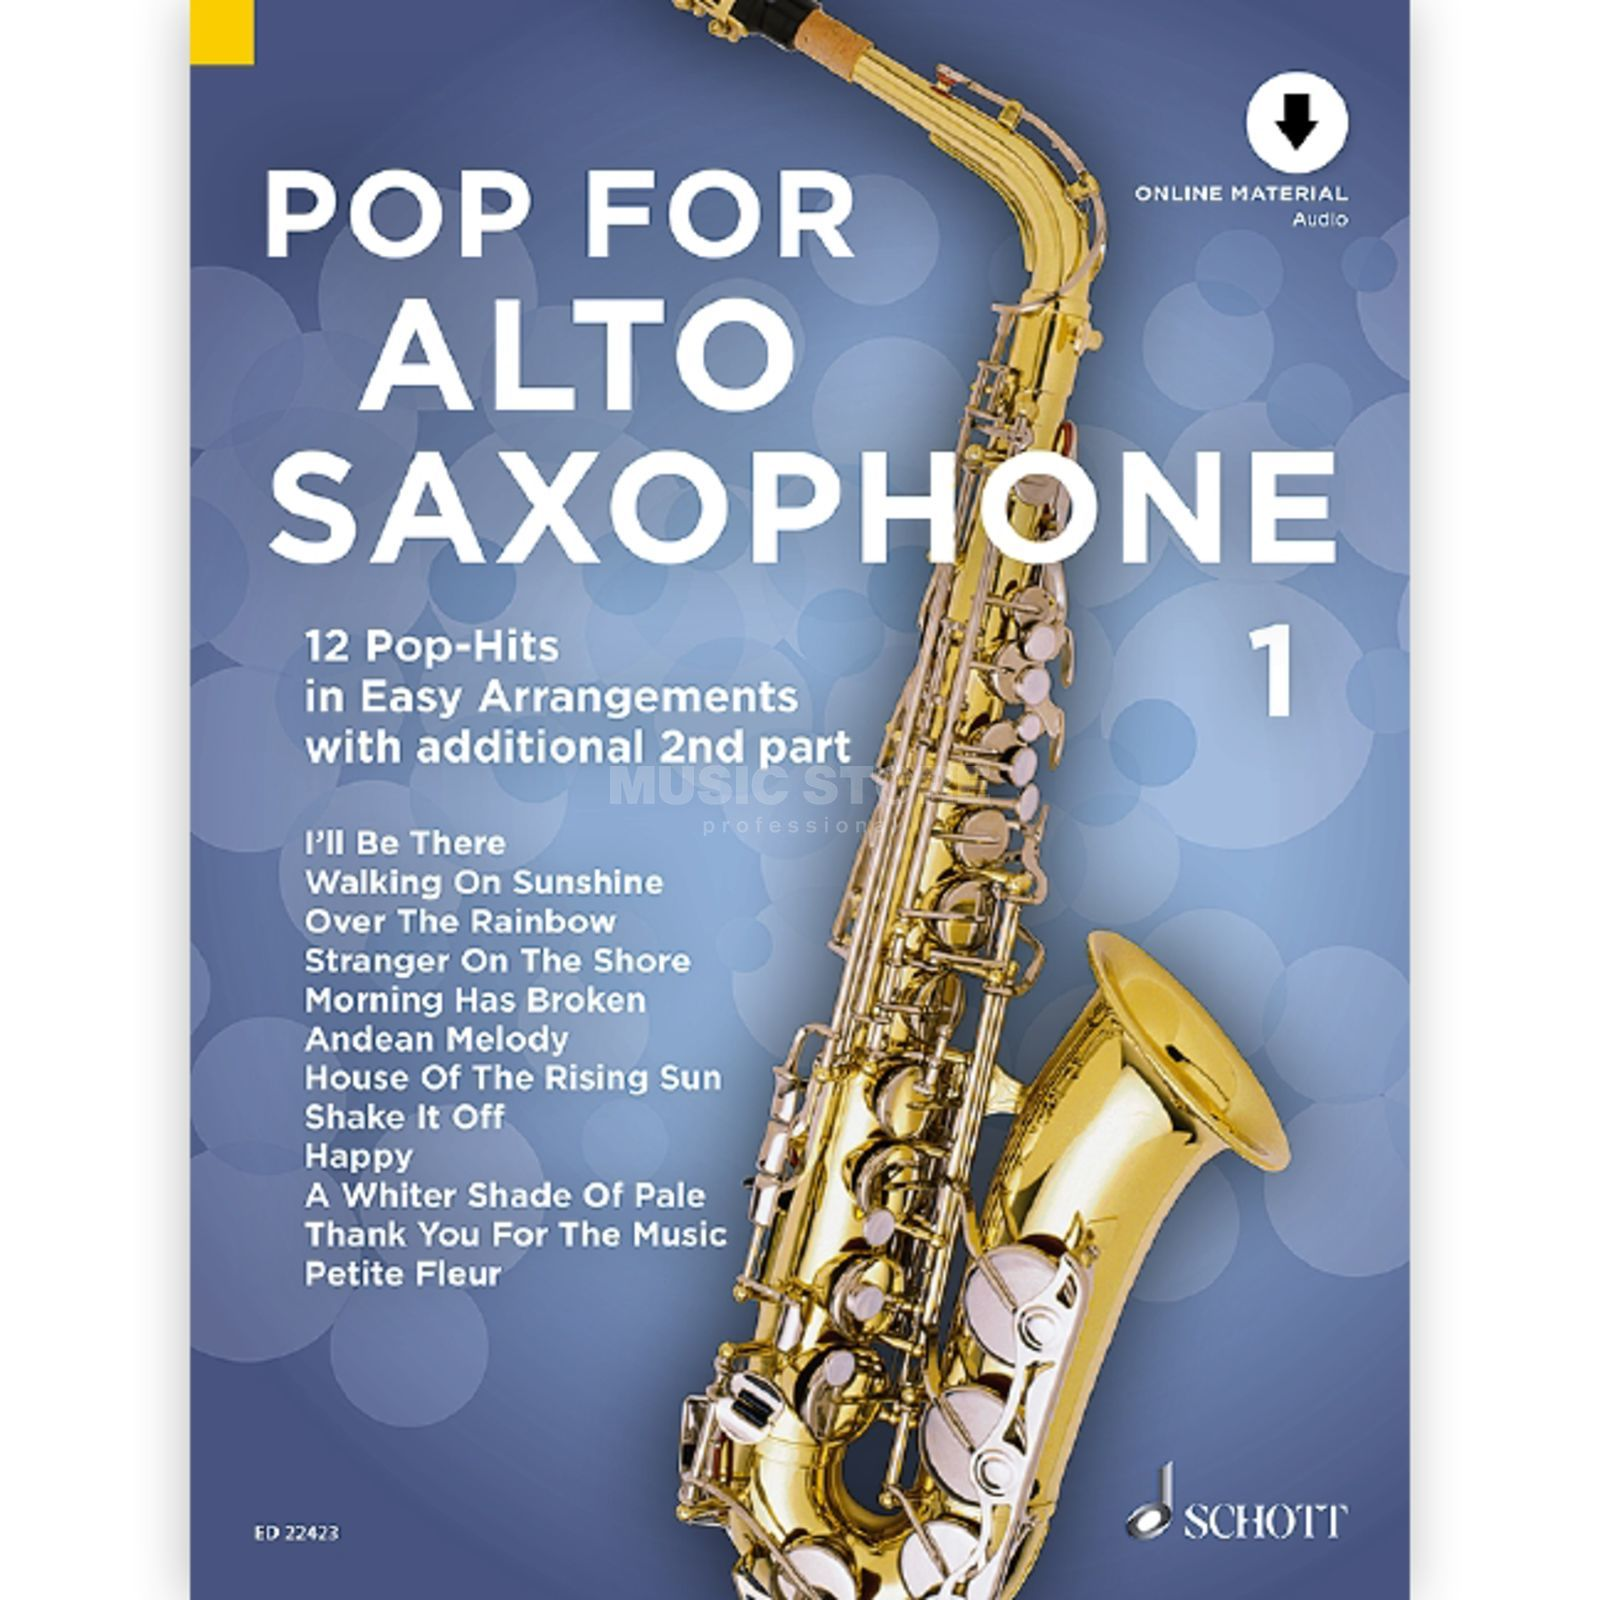 Schott Music Pop For Alto Saxophone 1 Product Image